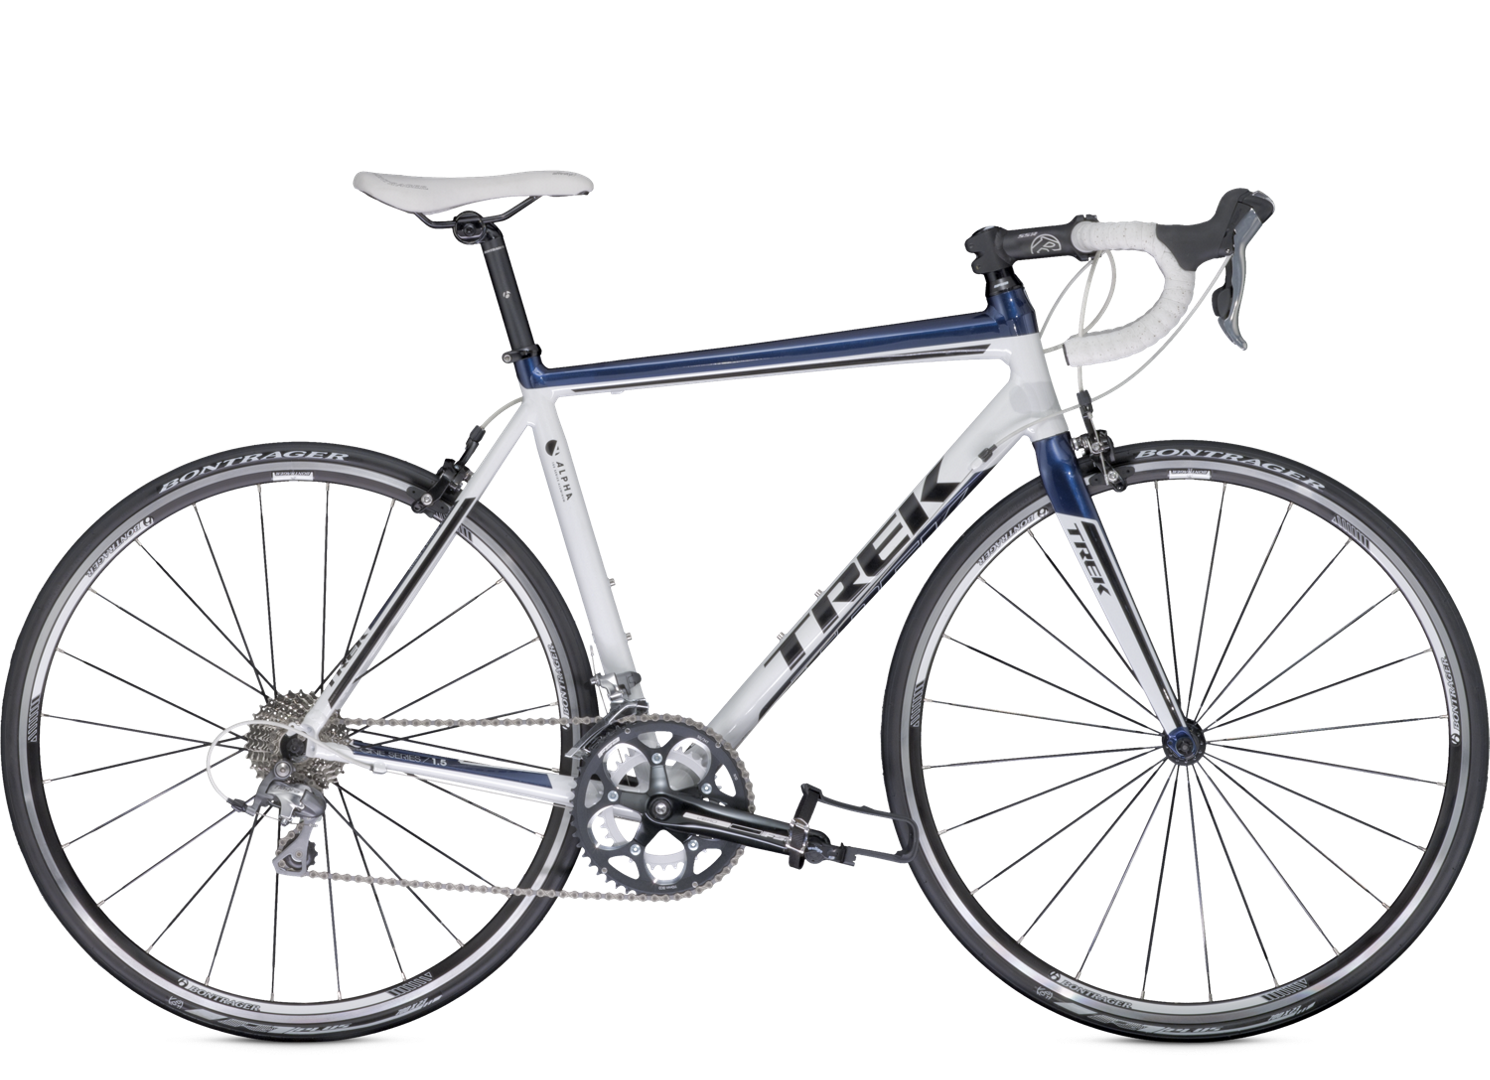 2013 1 5 H2 (Compact) - Bike Archive - Trek Bicycle